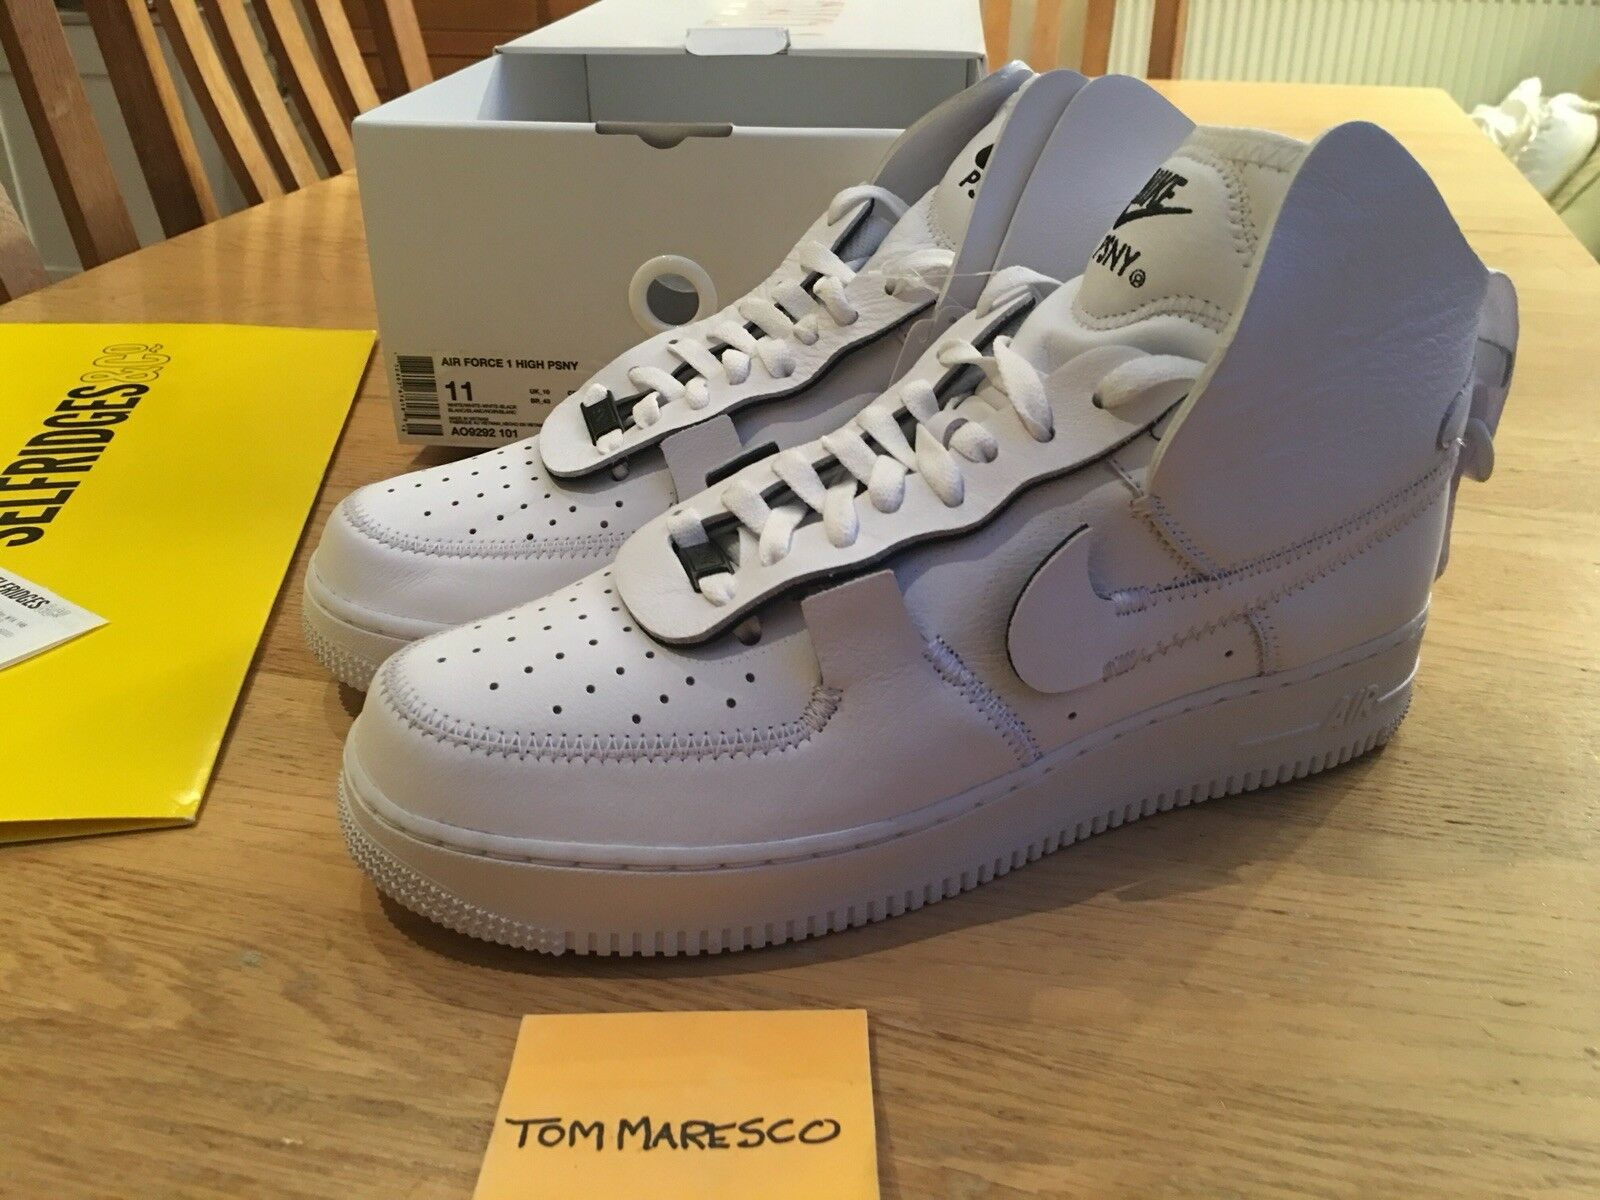 NIKE Air Obliger UK10 1 High PSNY Triple blanc AO9292-101 UK10 Obliger US11 EUR45 076f16